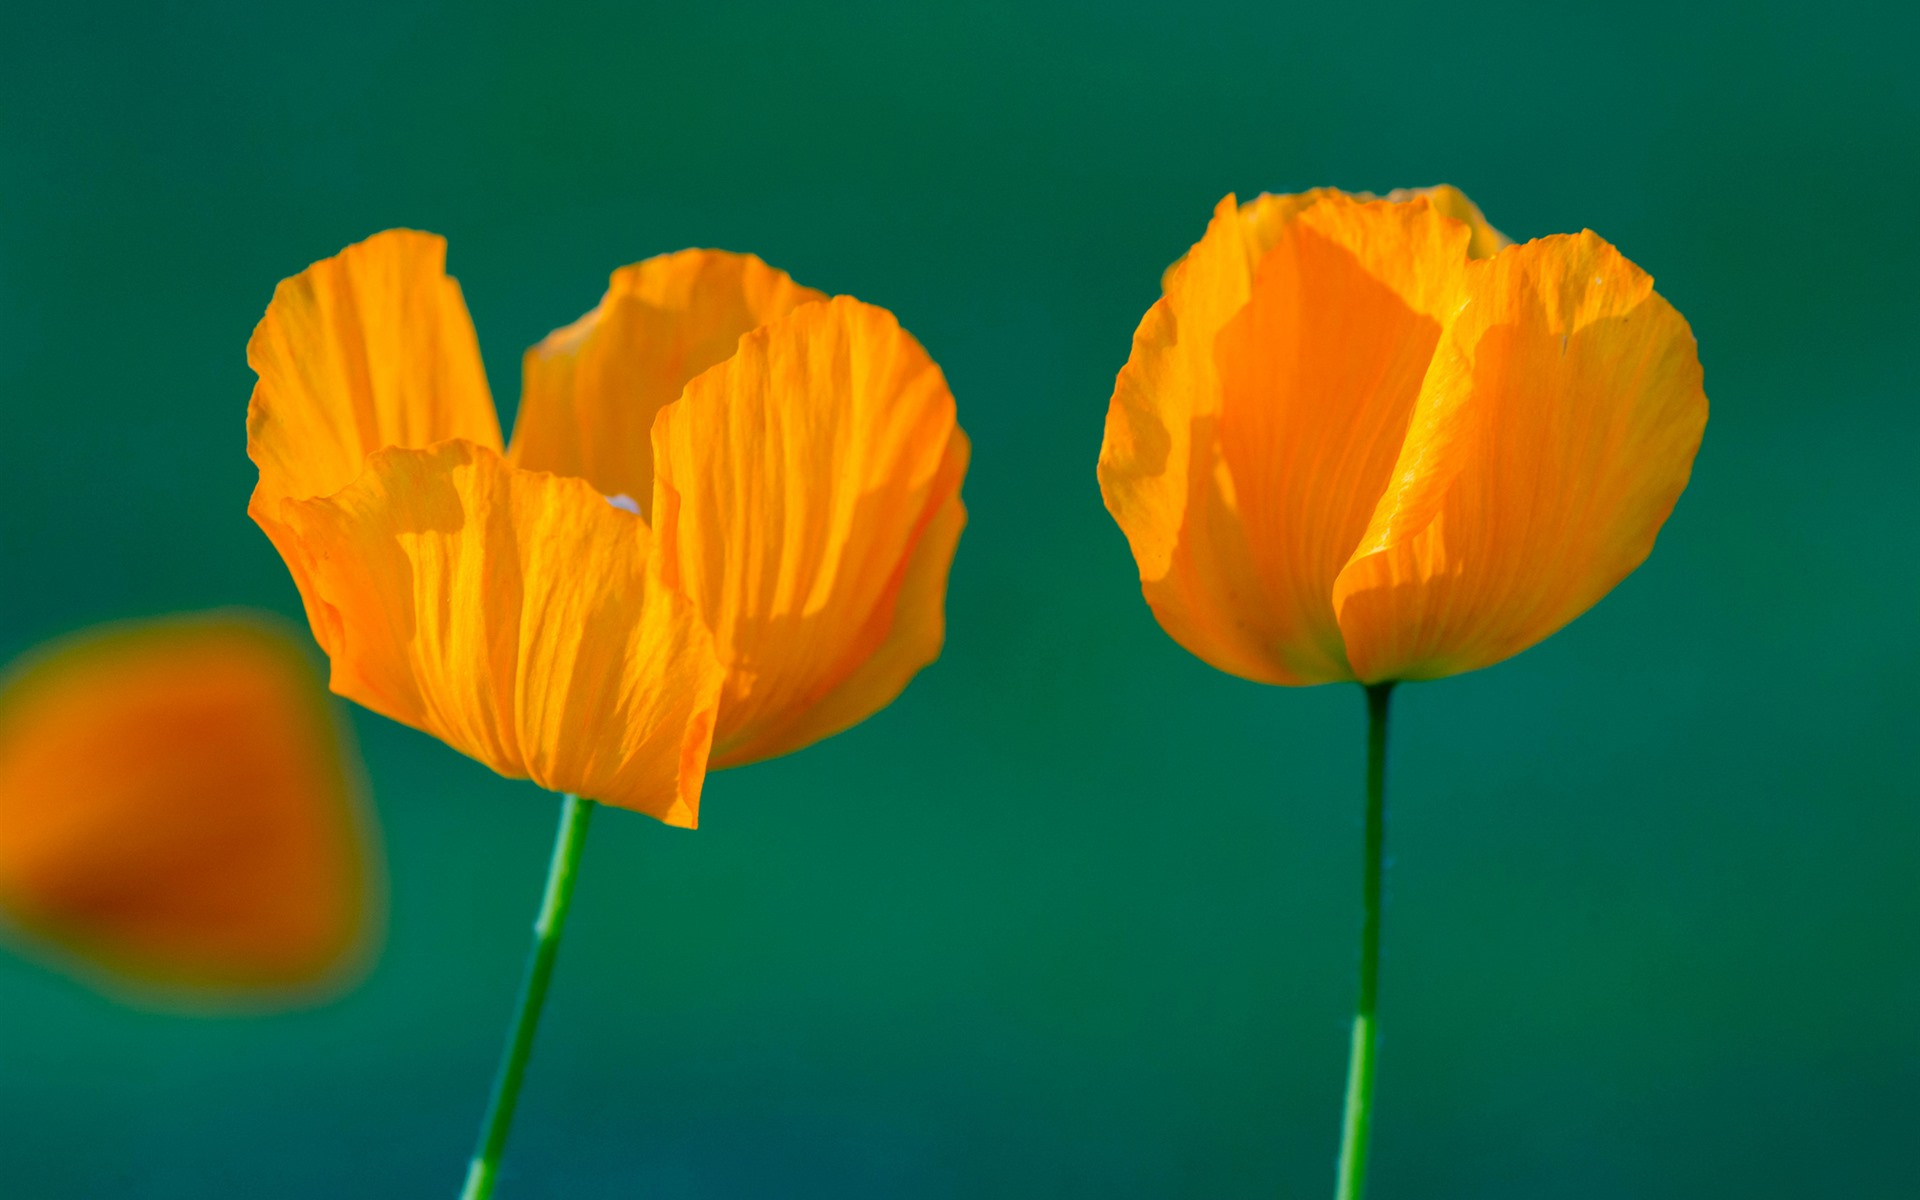 Wallpaper Orange Poppy Flowers Stem 1920x1200 Hd Picture Image